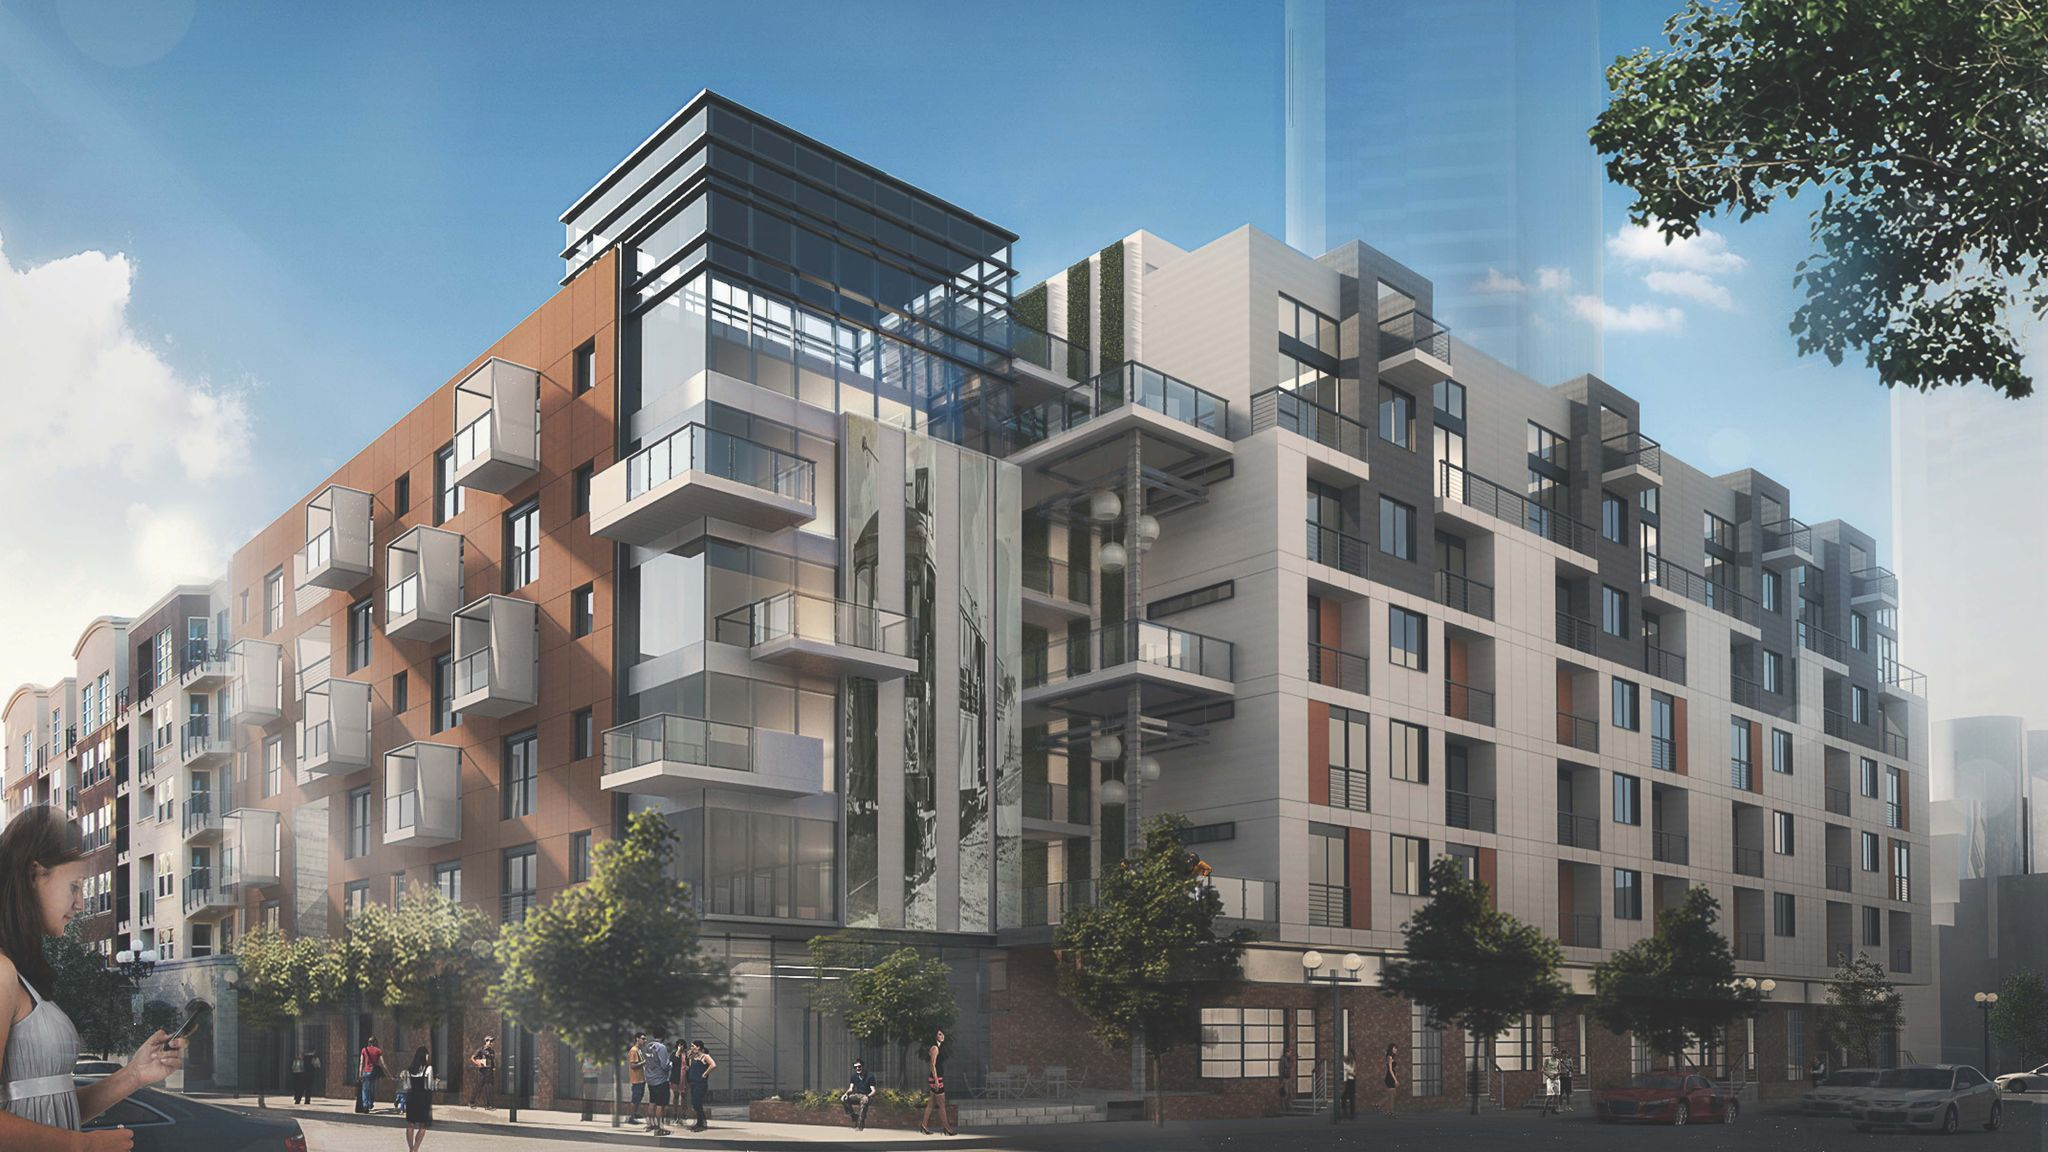 6 story apartment building replacing cost plus store the san diego union tribune - Apartment buildings san diego ...